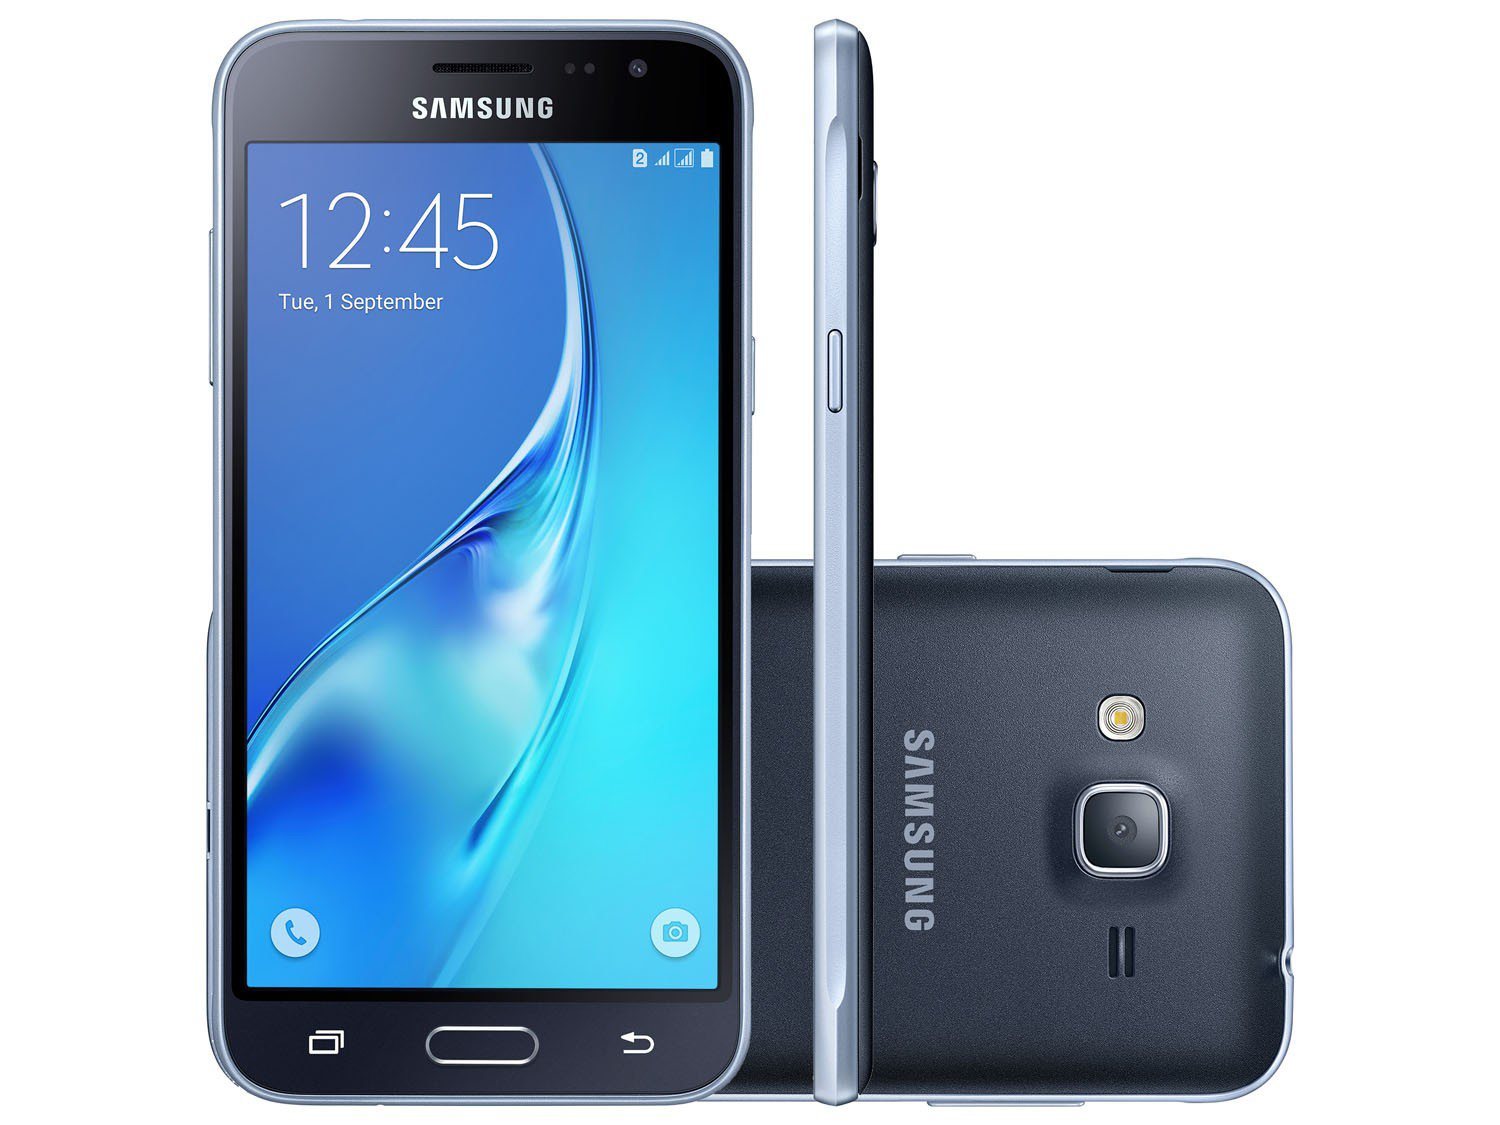 smartphone samsung galaxy j3 2016 8gb preto dual chip 4g. Black Bedroom Furniture Sets. Home Design Ideas